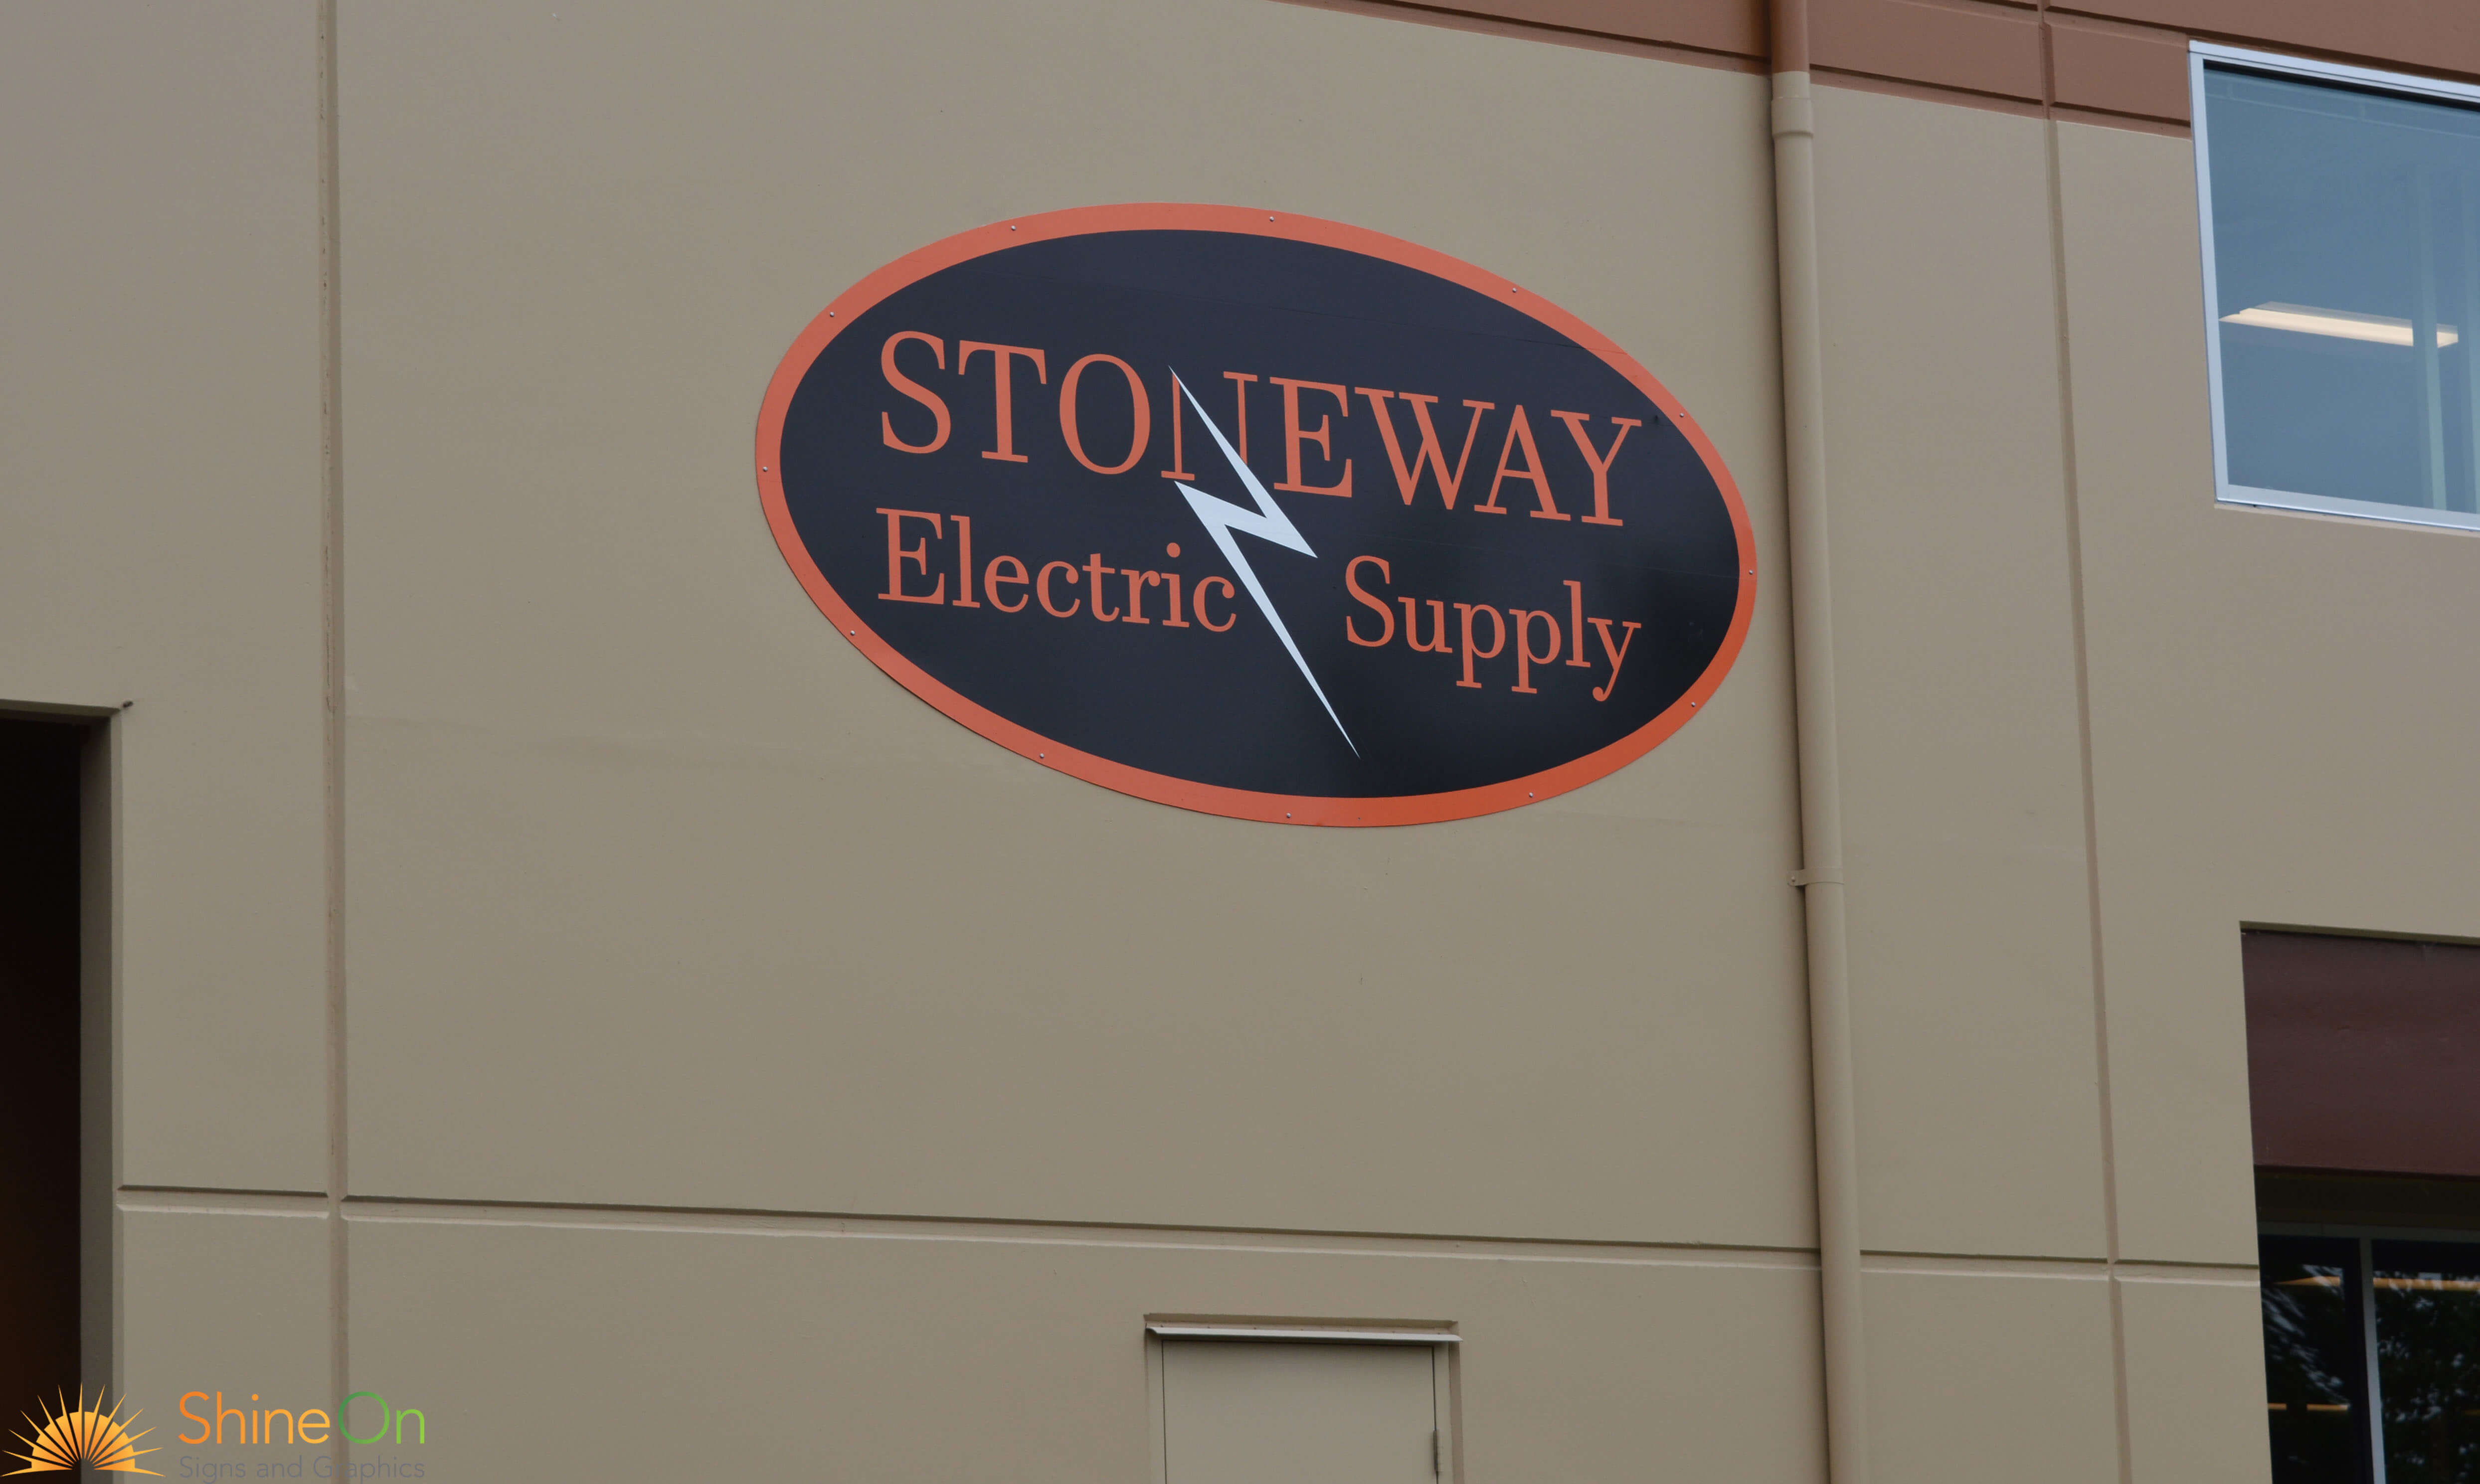 Stoneway Electric Building Sign 8